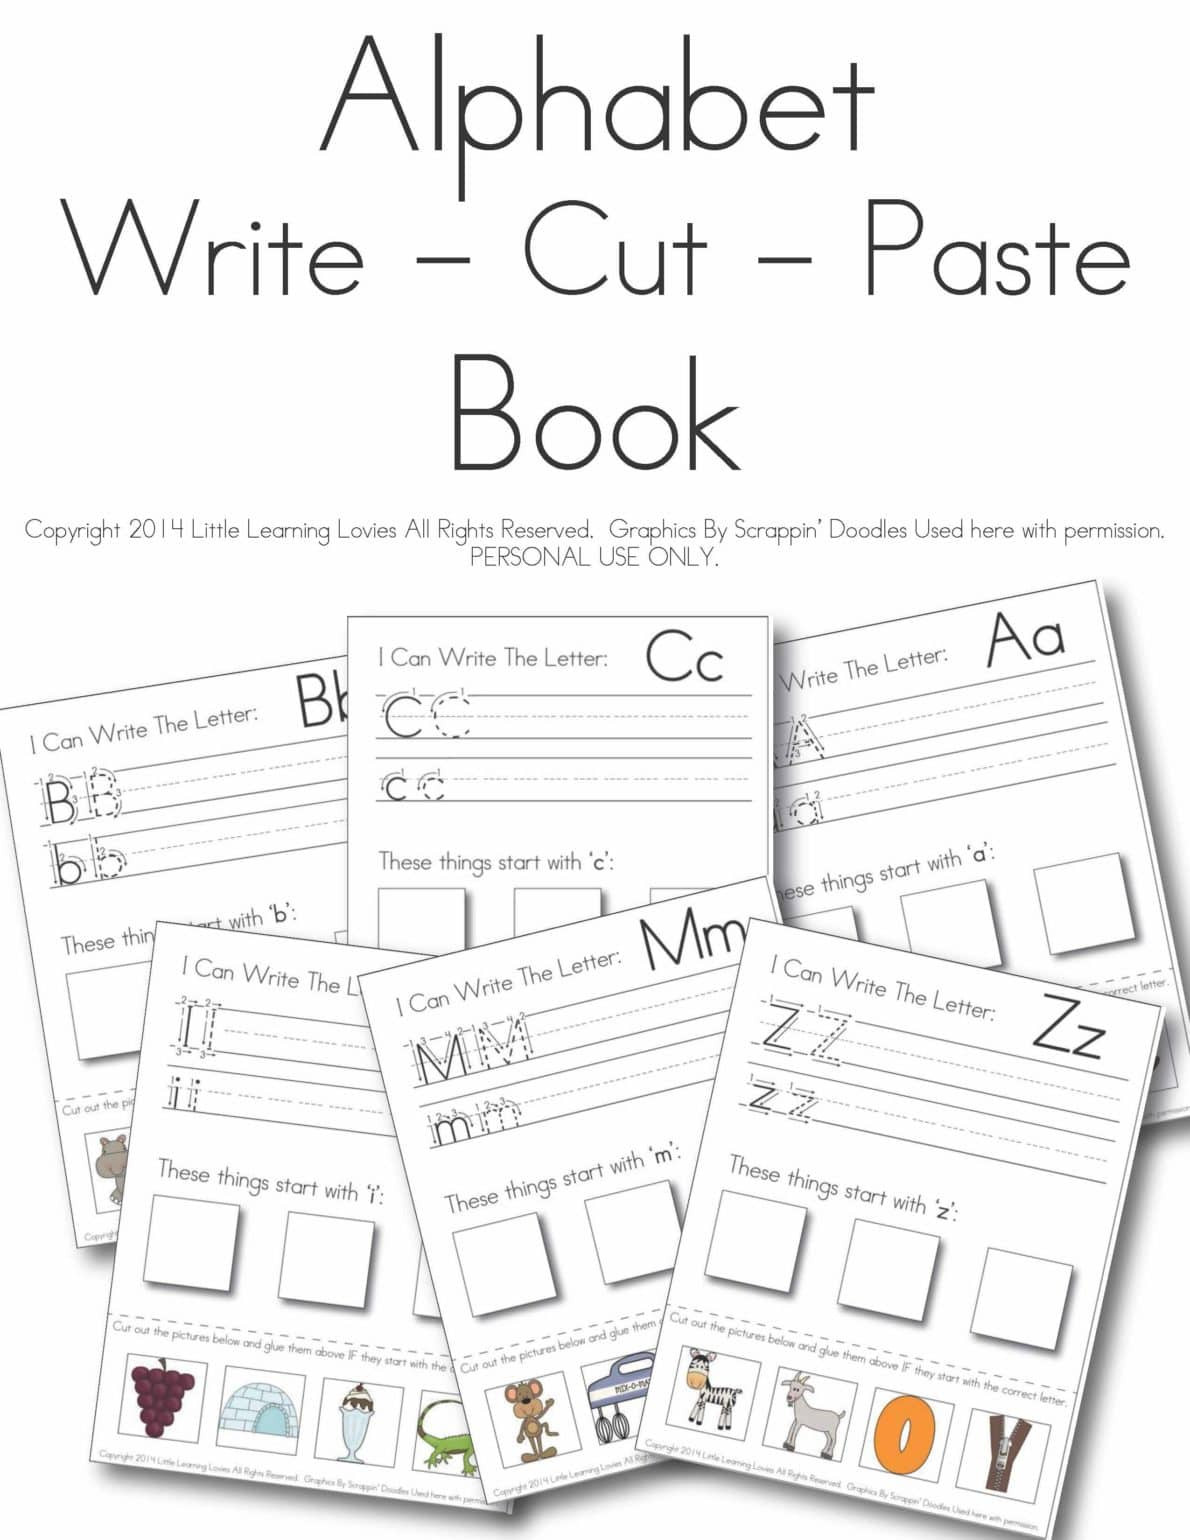 Alphabet Cut and Paste Worksheets Write Cut Paste Alphabet Set